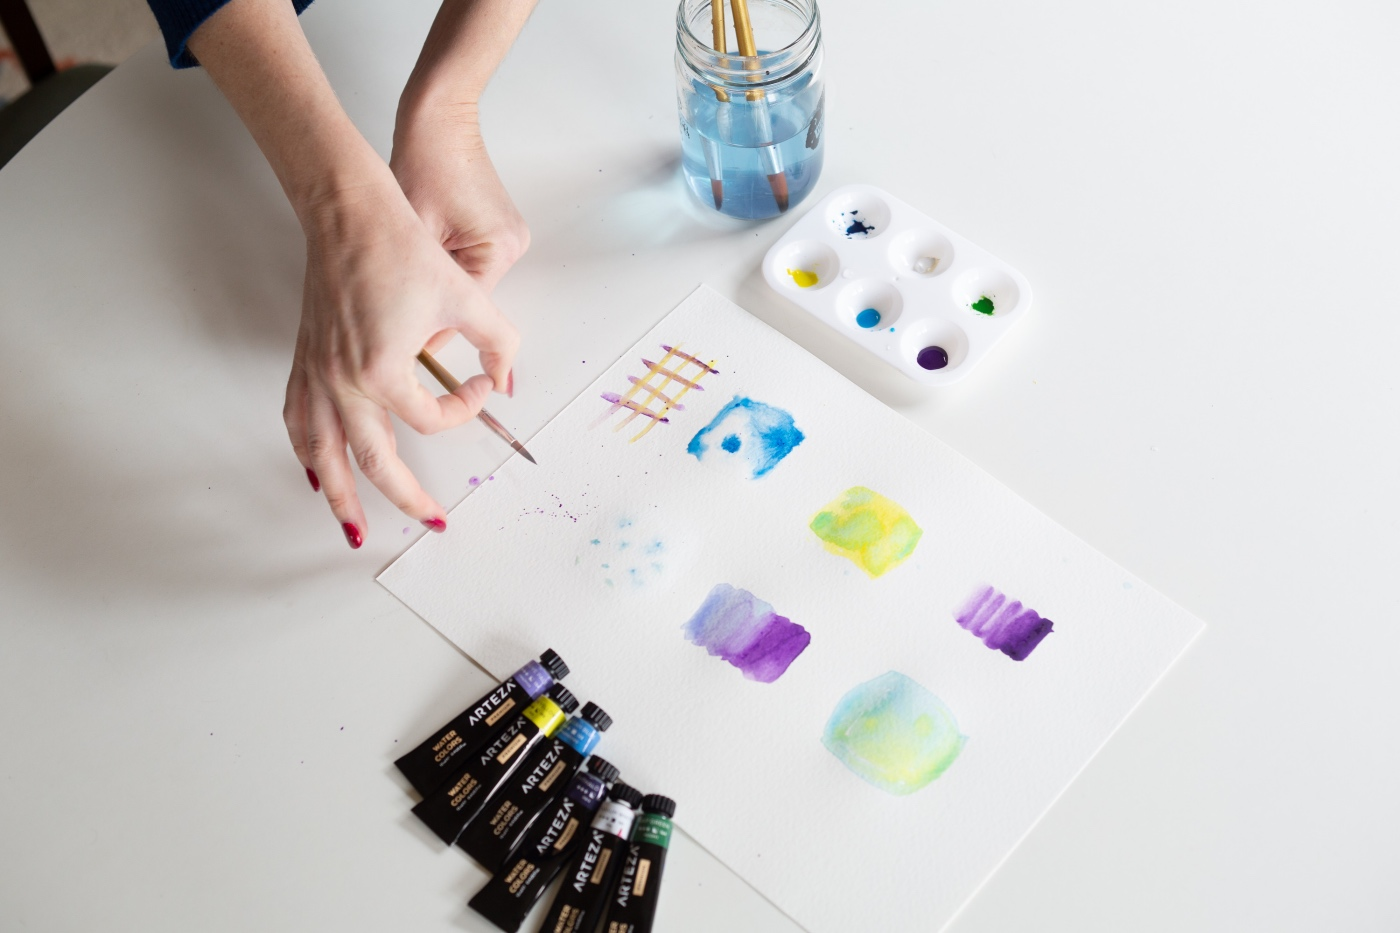 splatter painting wiith watercolor how to guide pop shop america craft in style